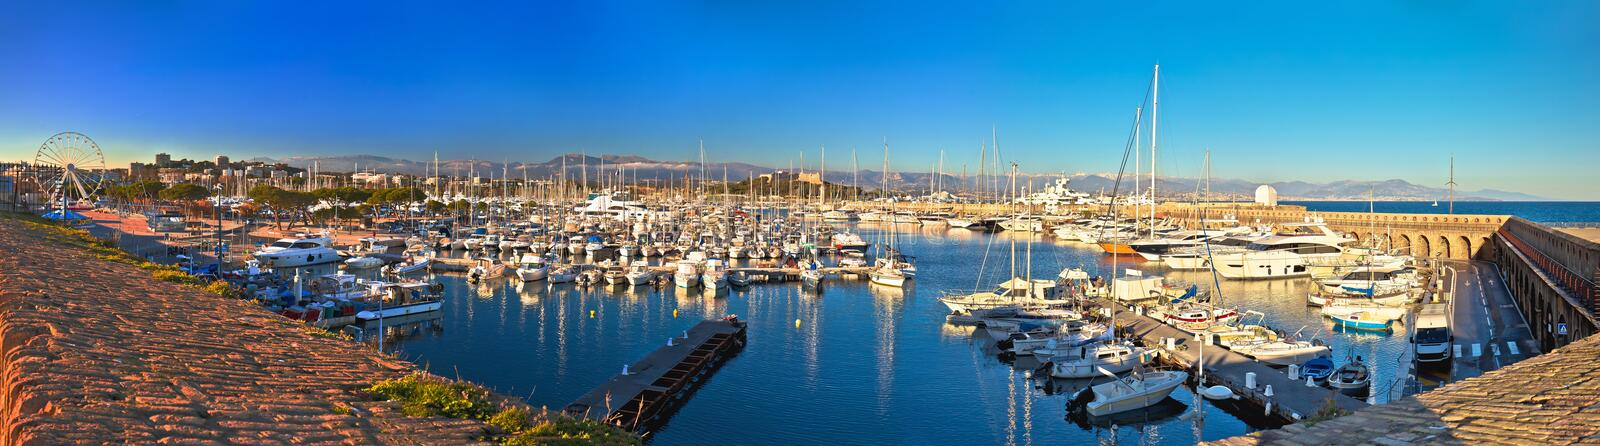 Anntibes waterfront anf Port Vauban harbor panoramic view. Southern France royalty free stock photography